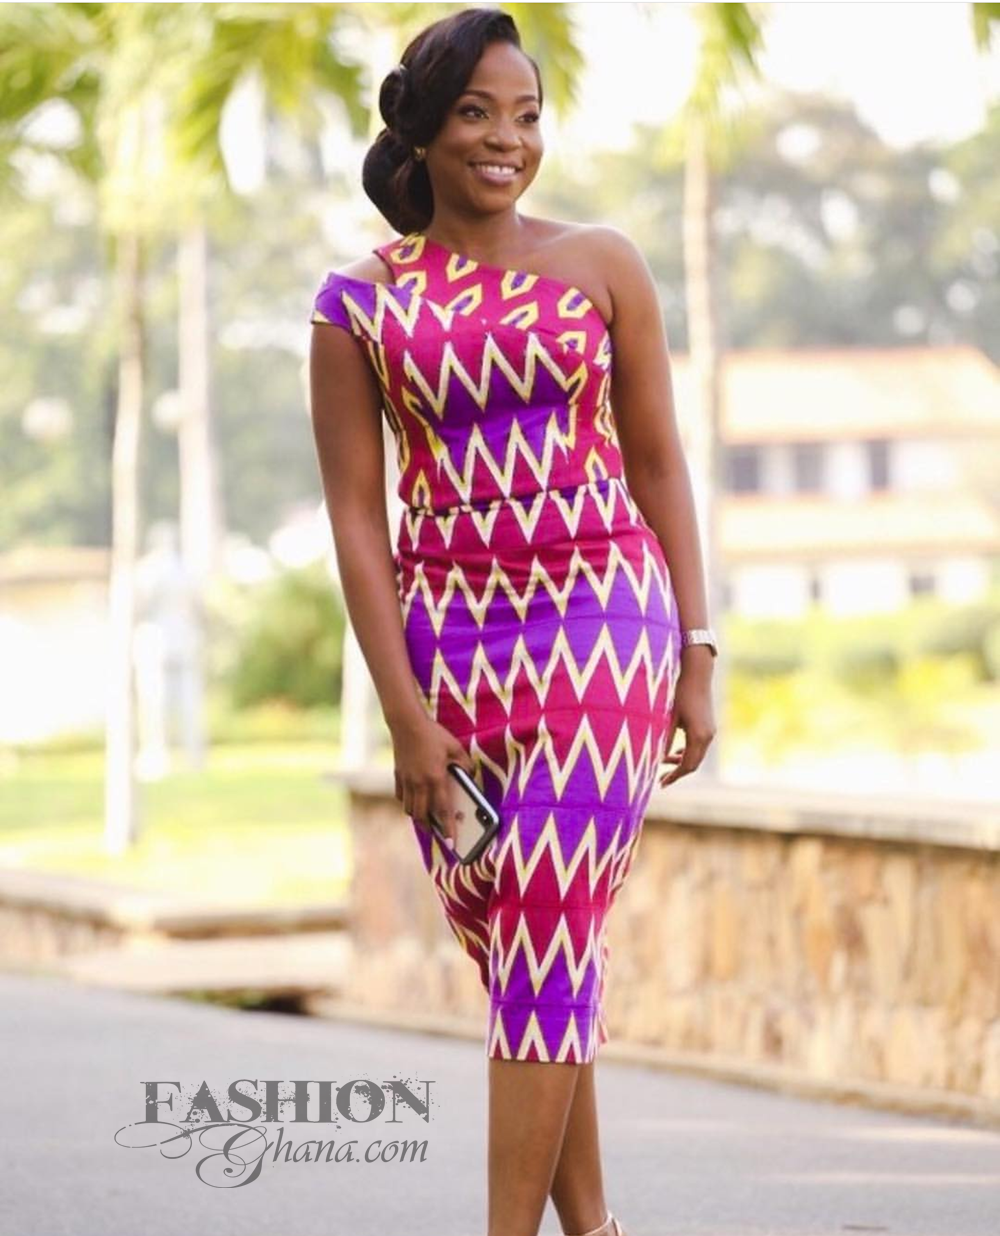 Fgstyle Looks To Help You Choose The Right African Print Colors For The Summer Harmattan Season Fashionghana Com 100 African Fashion African Fashion Dresses Latest African Fashion Dresses African Print Fashion Dresses [ 1236 x 1000 Pixel ]